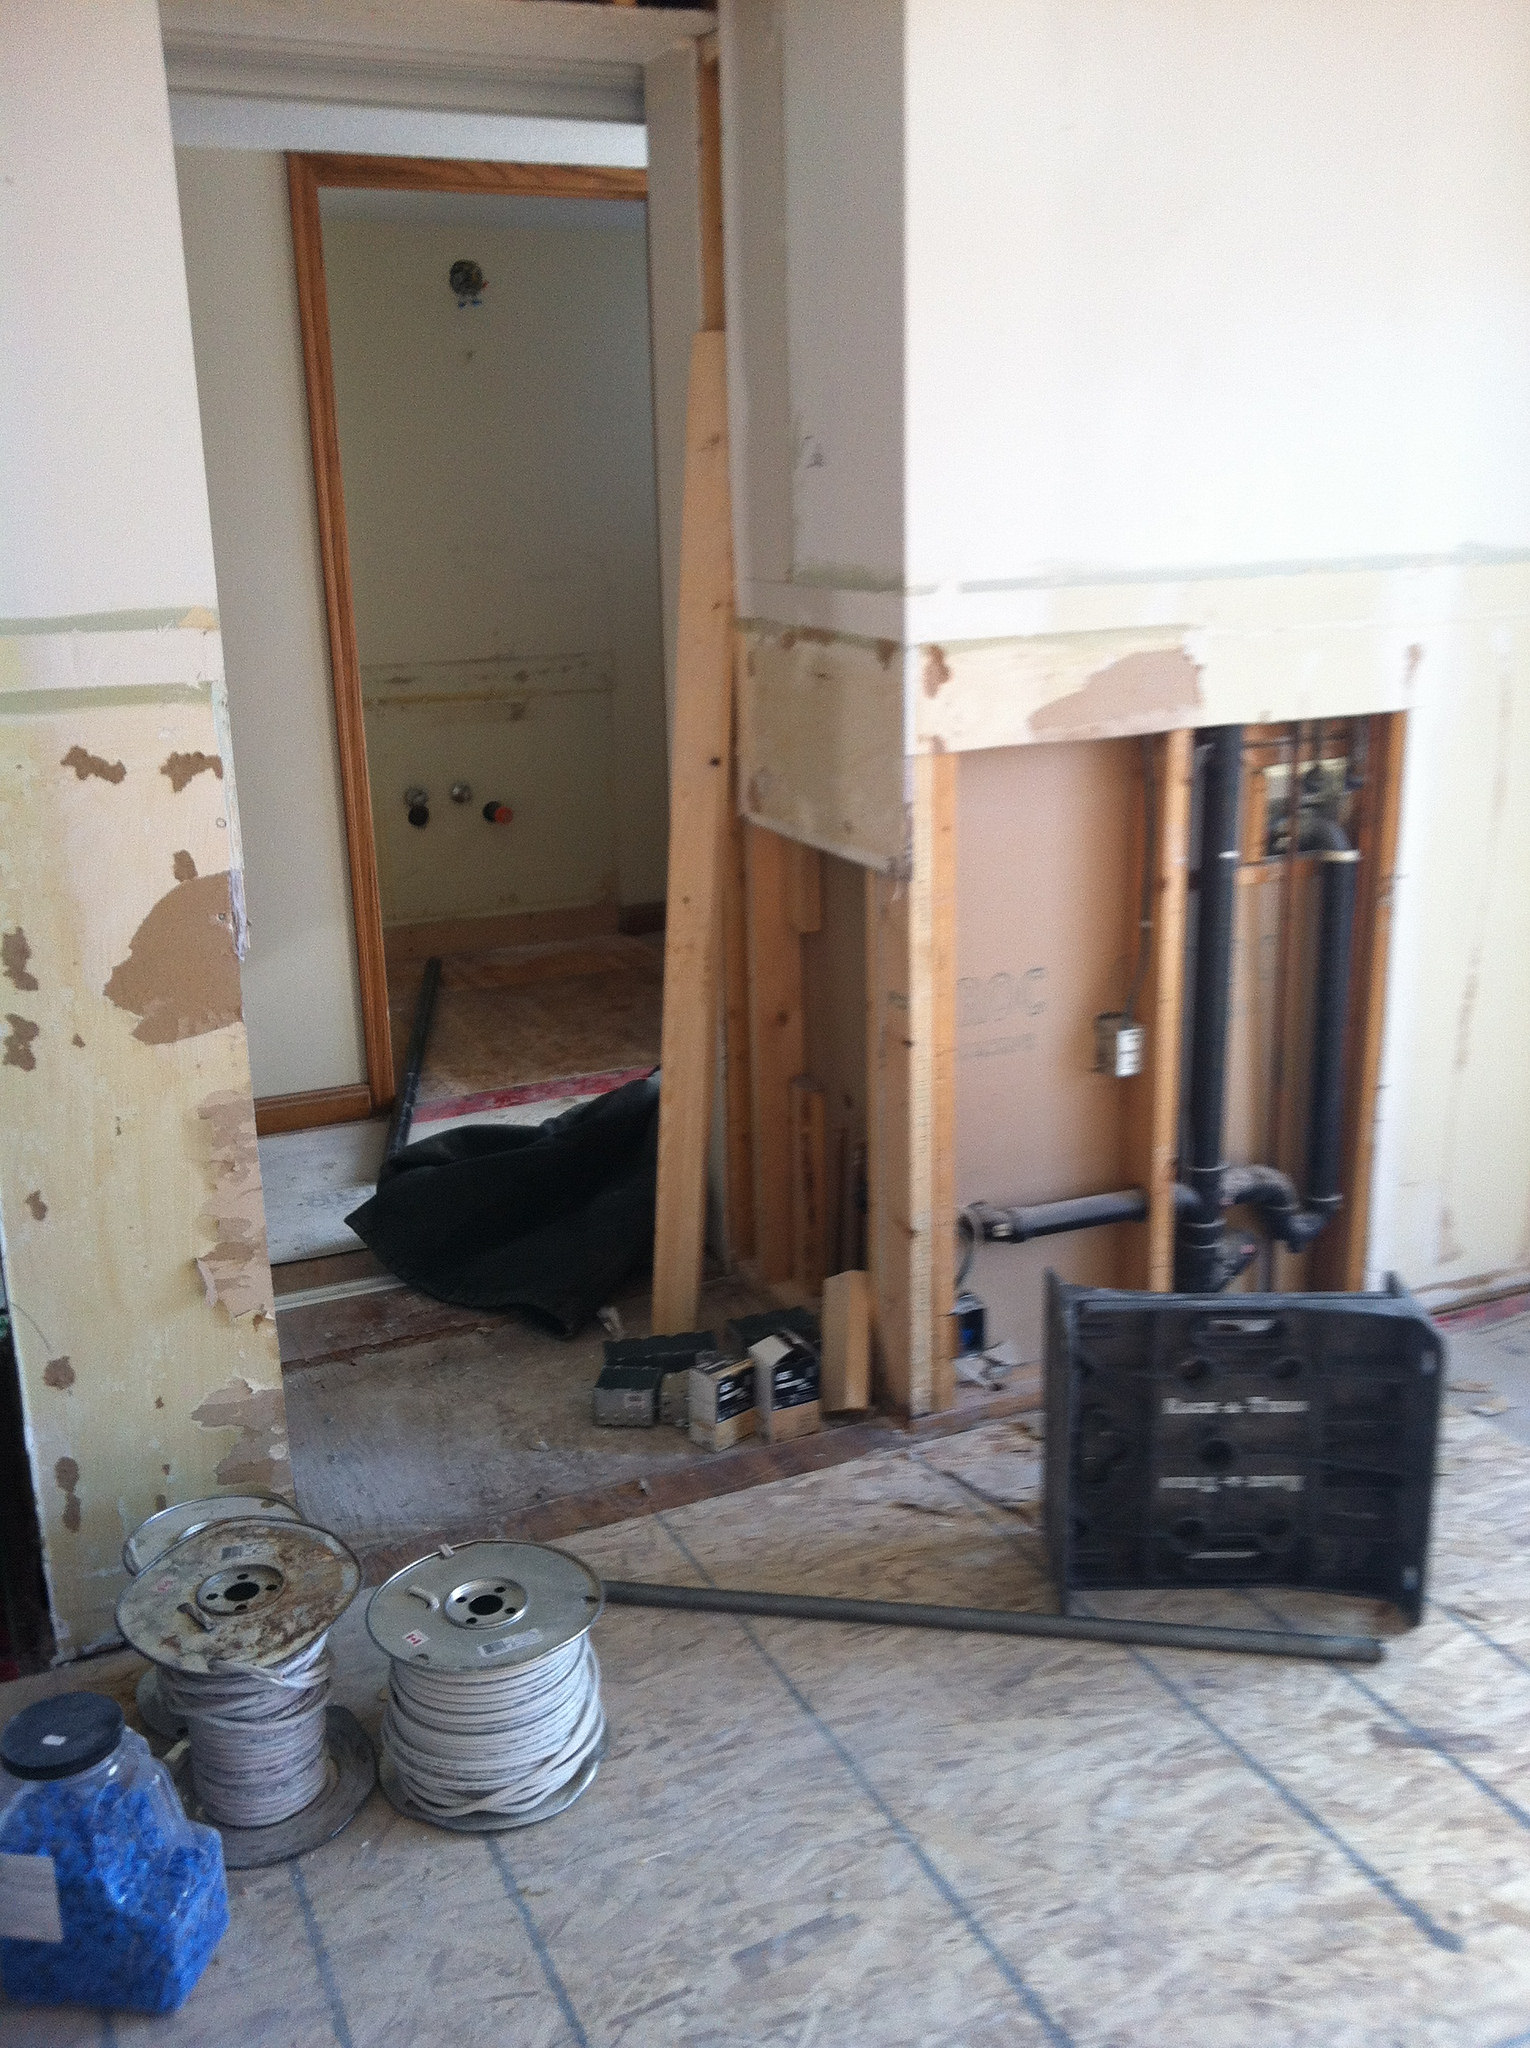 View of wet bar removed and plumbing section of wall